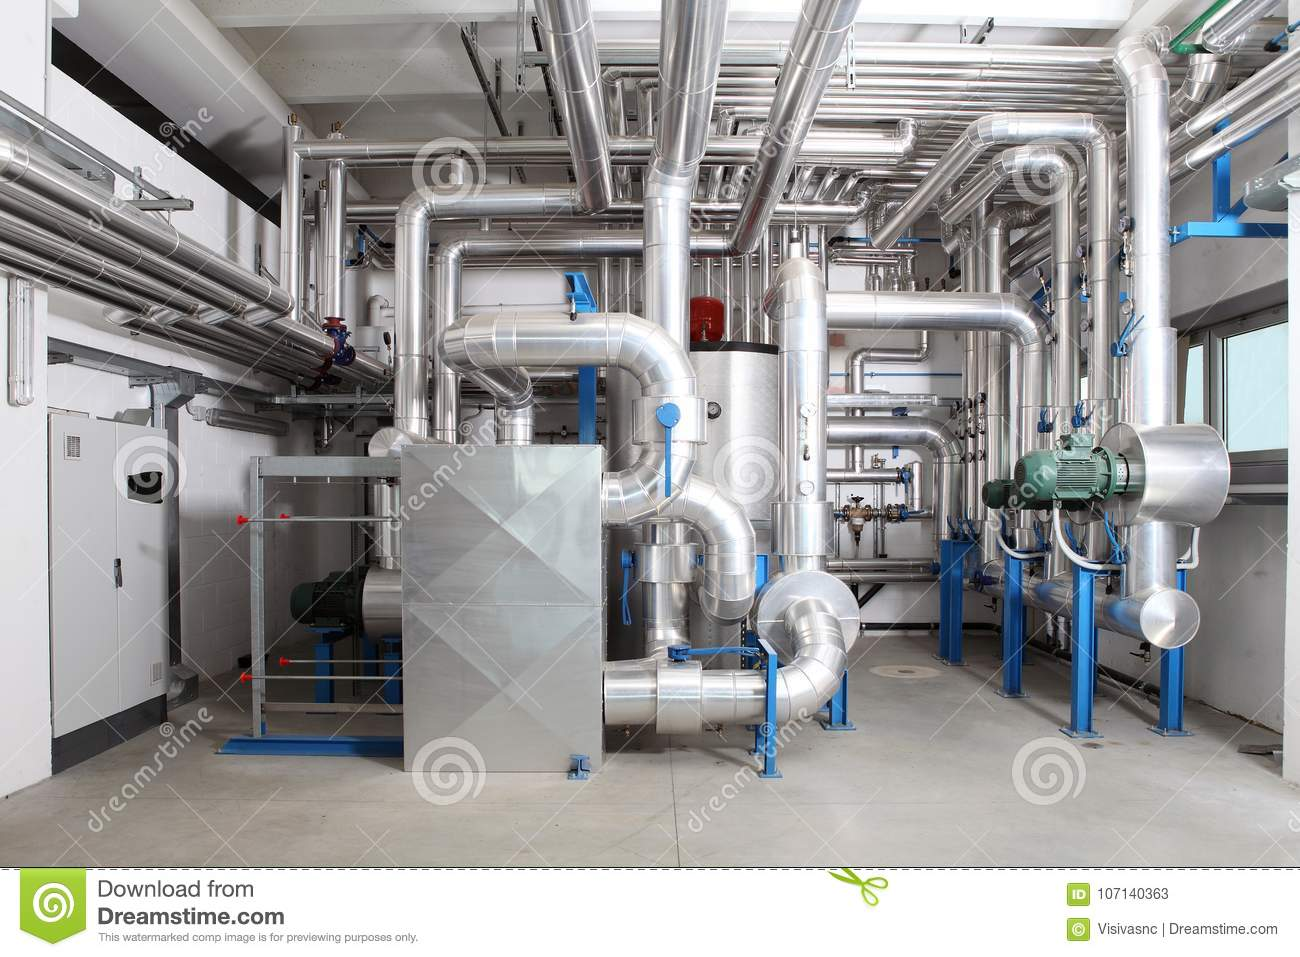 Central Heating And Cooling System Control In A Boiler